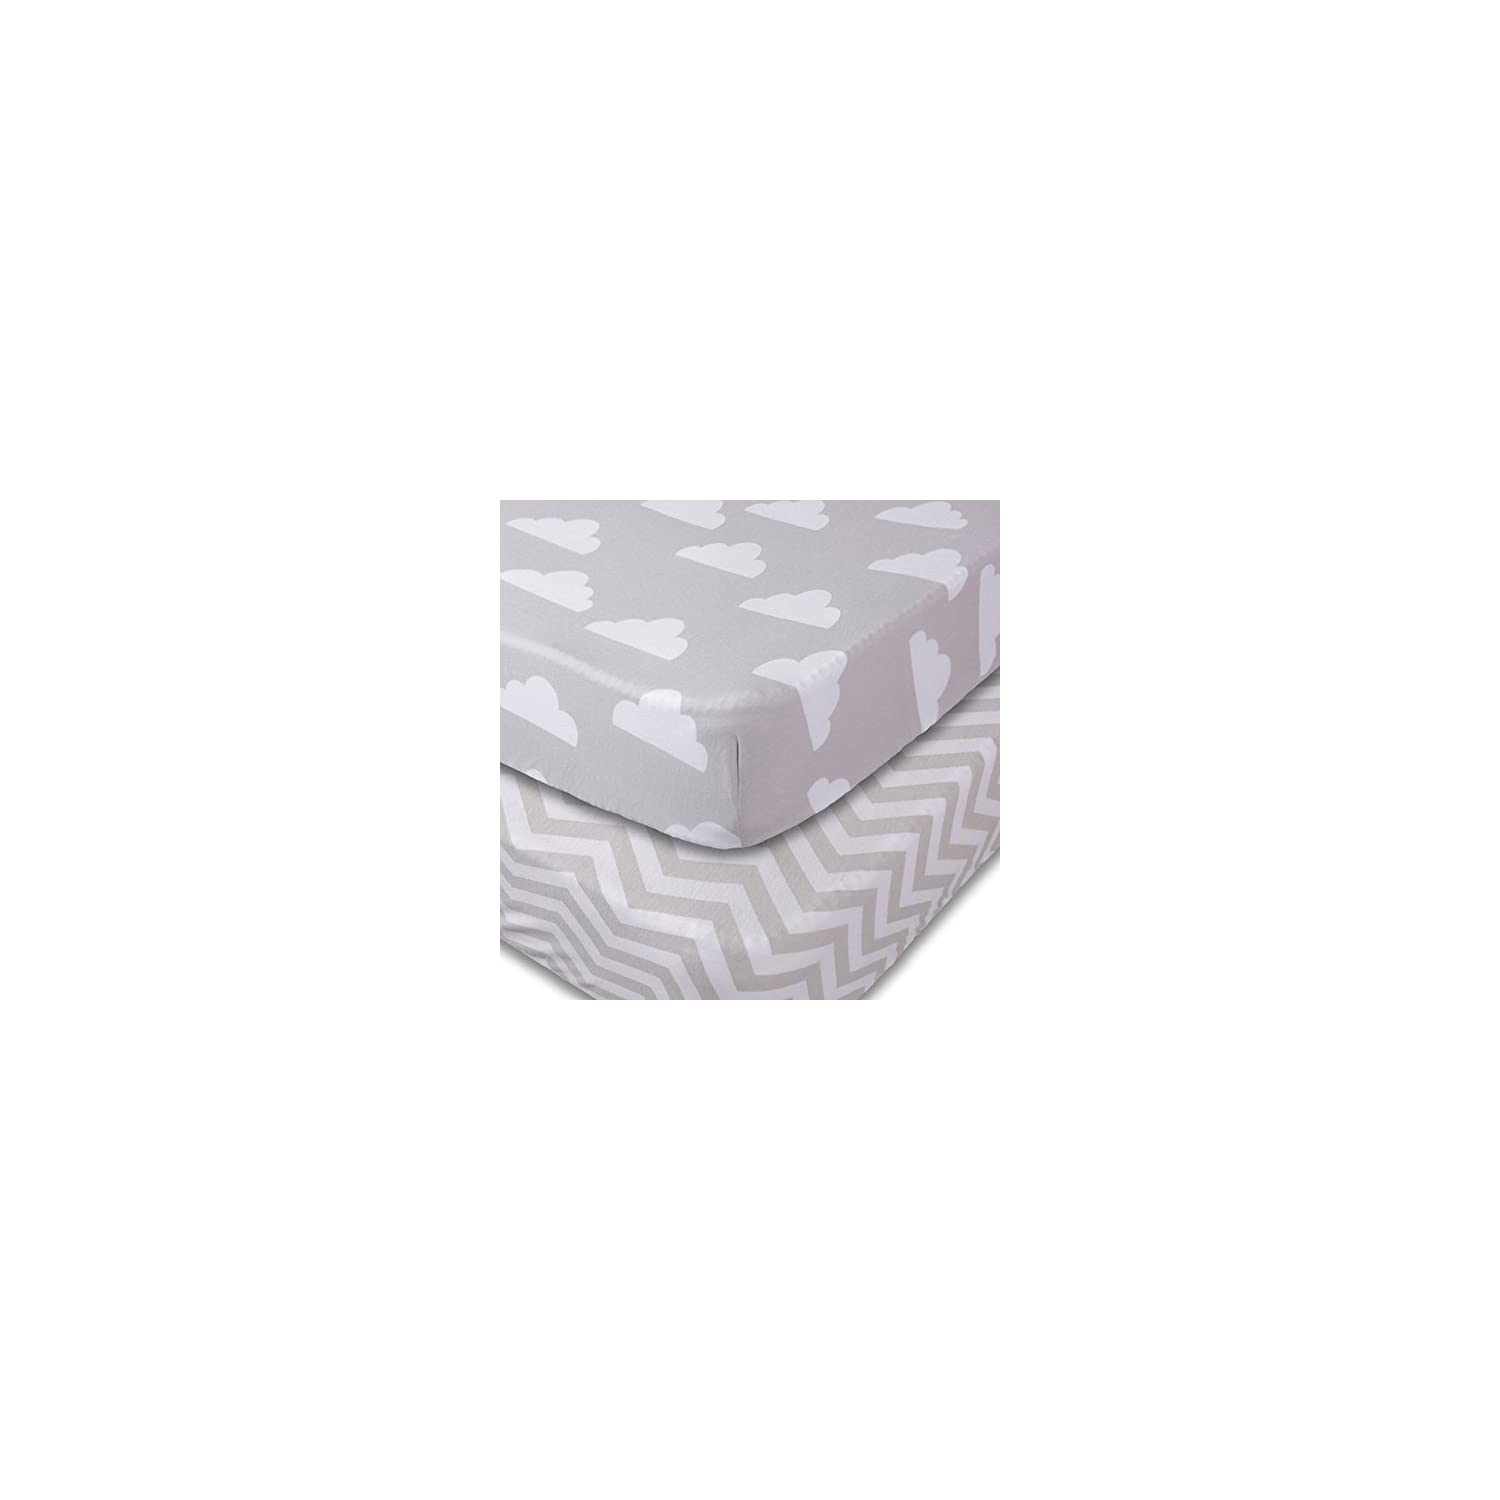 Crib Sheets, 2 Pack Unisex Clouds and Chevron Fitted Soft Jersey Cotton Bedding